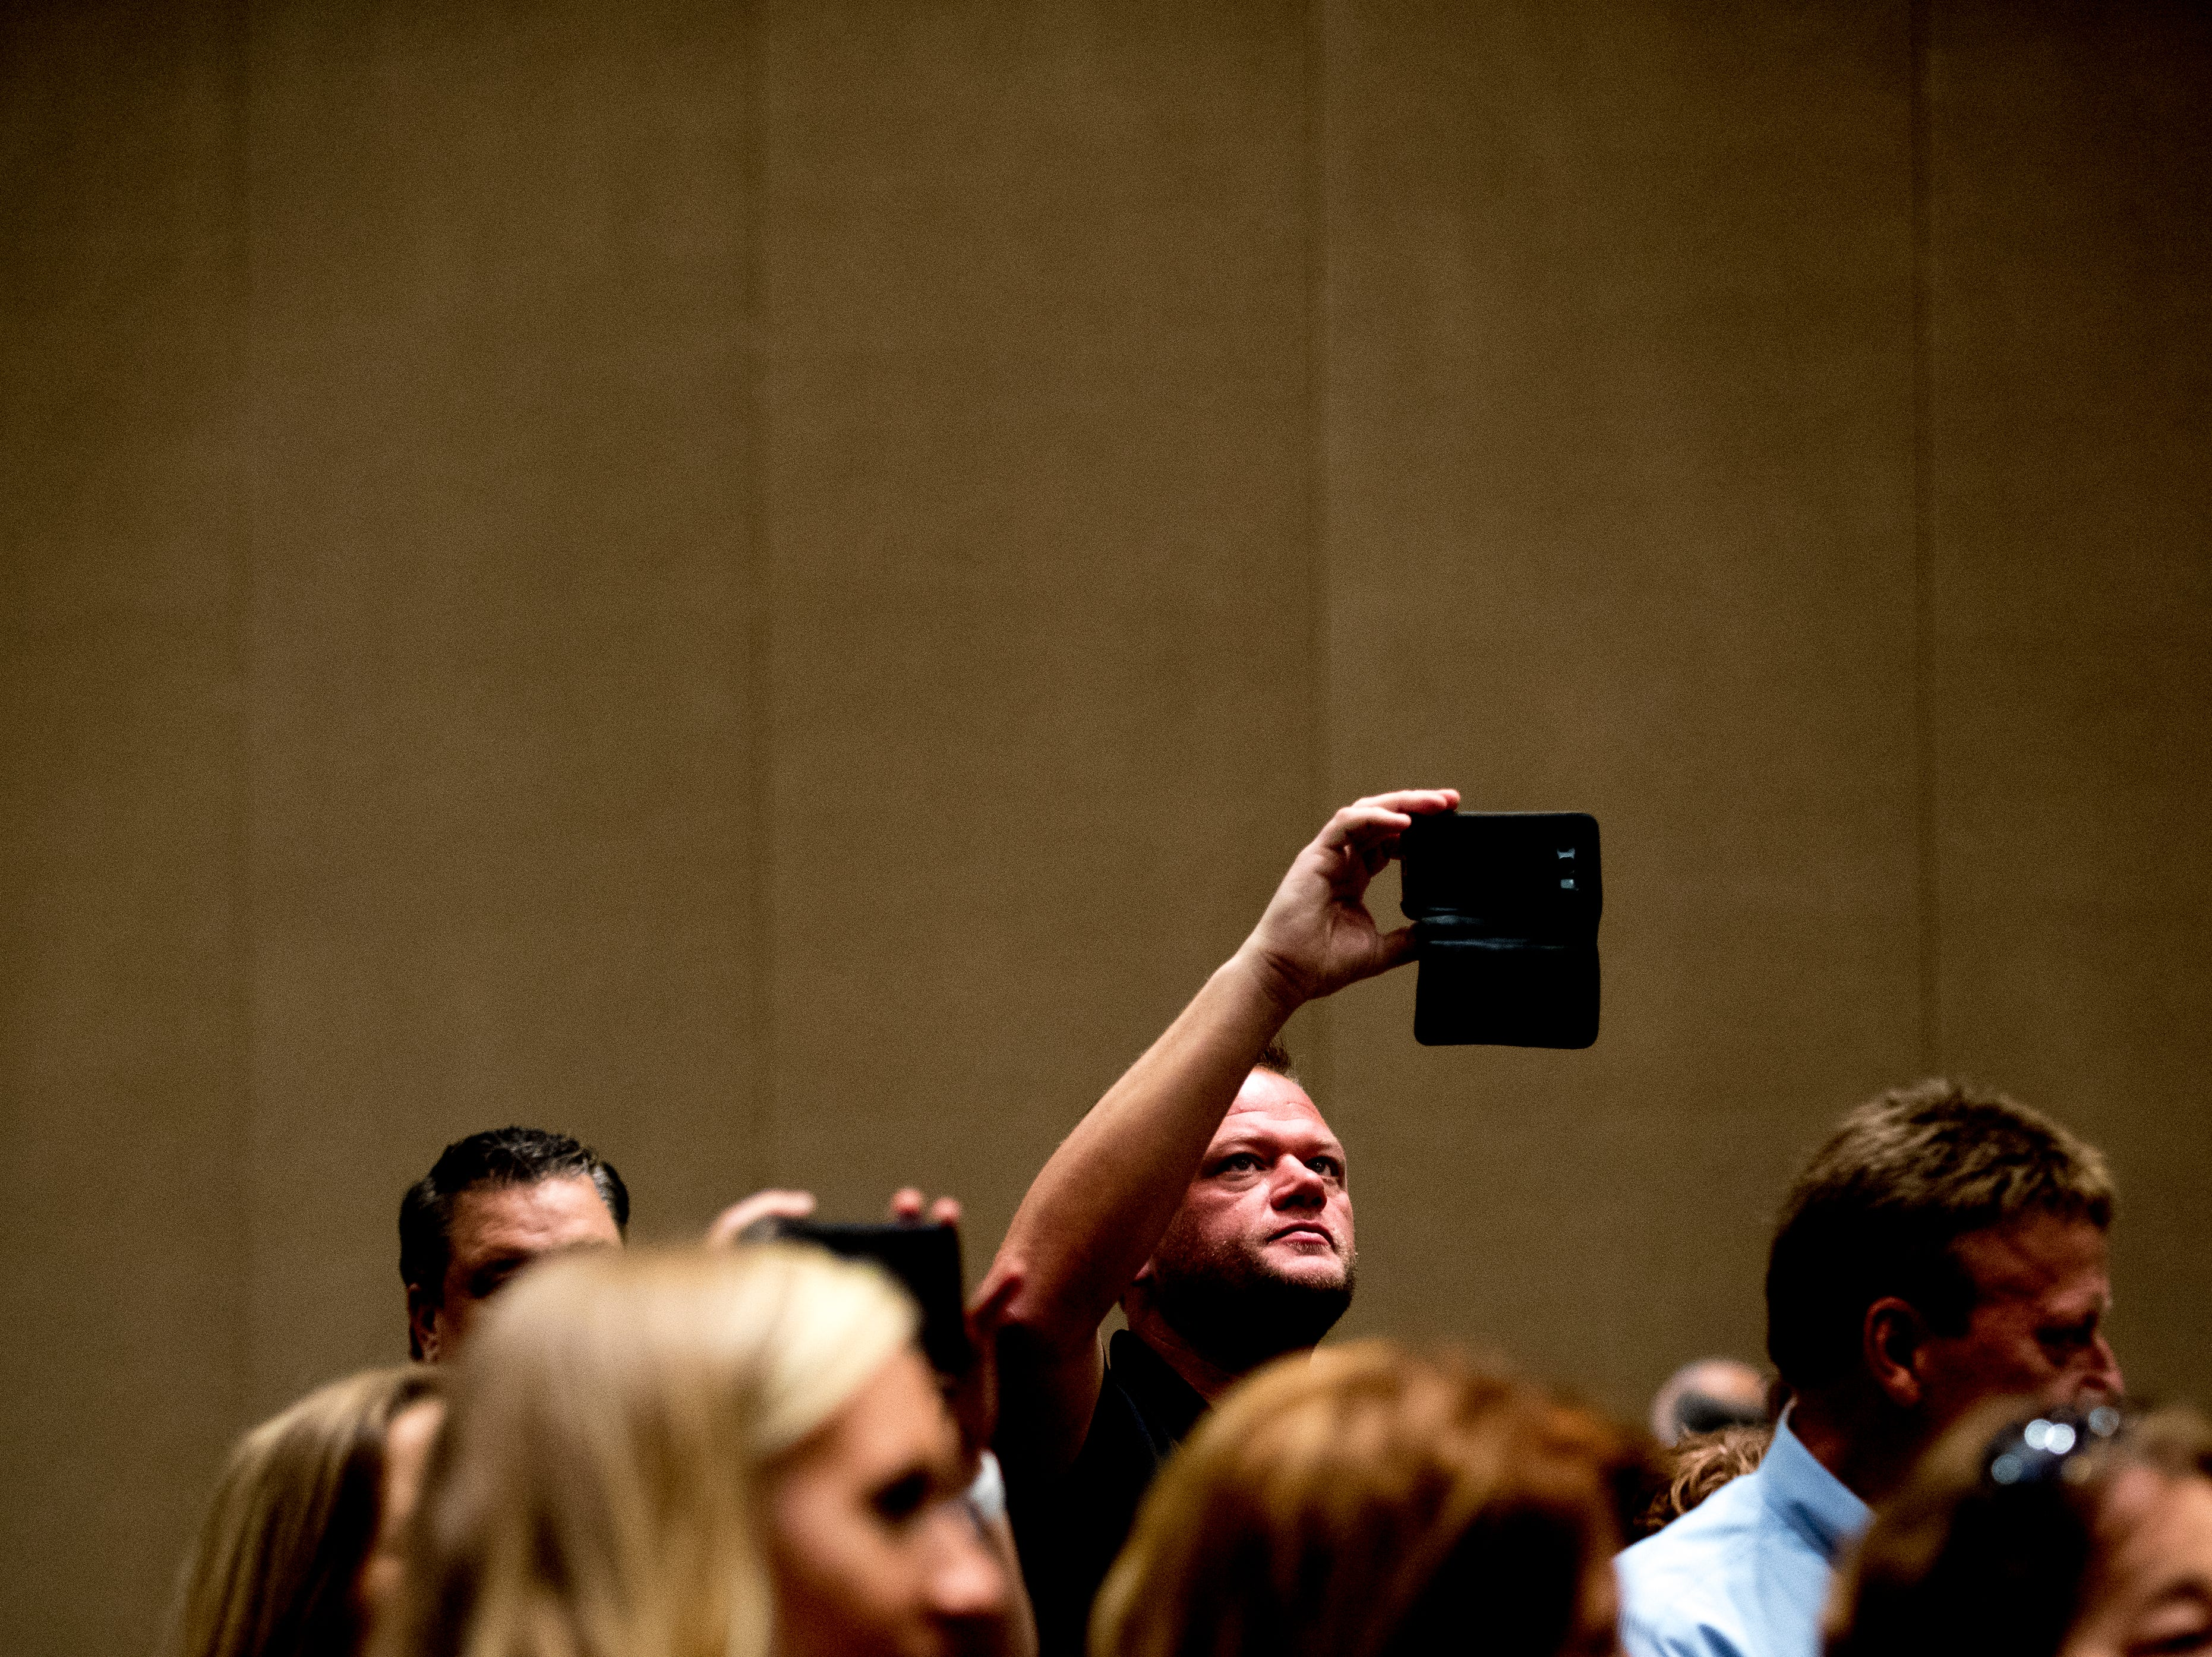 An attendee snaps a photo from the back of the room during an announcement ceremony for Ole Red Gatlinburg in Gatlinburg, Tennessee on Tuesday, September 18, 2018. The 13,500 square-foot entertainment venue with a two-story bar, restaurant and performance space with space for 325 patrons is slated to open spring 2019.